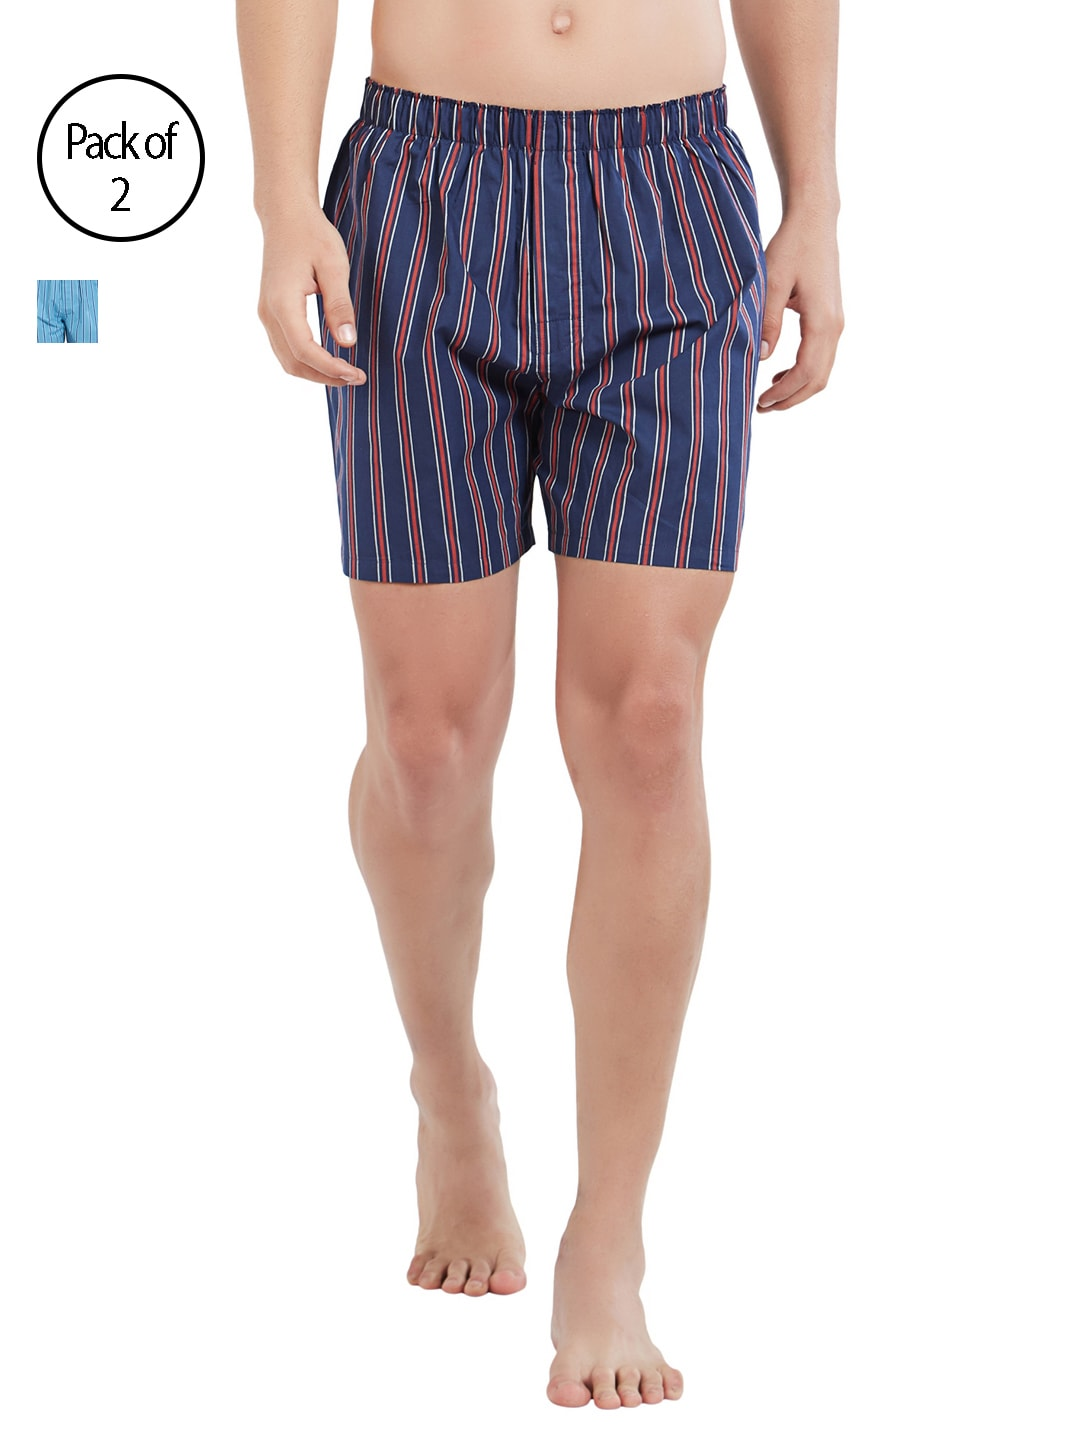 XYXX Men Pack of 2 Slim Fit Striped Boxers XYBOX2PCKN79 image